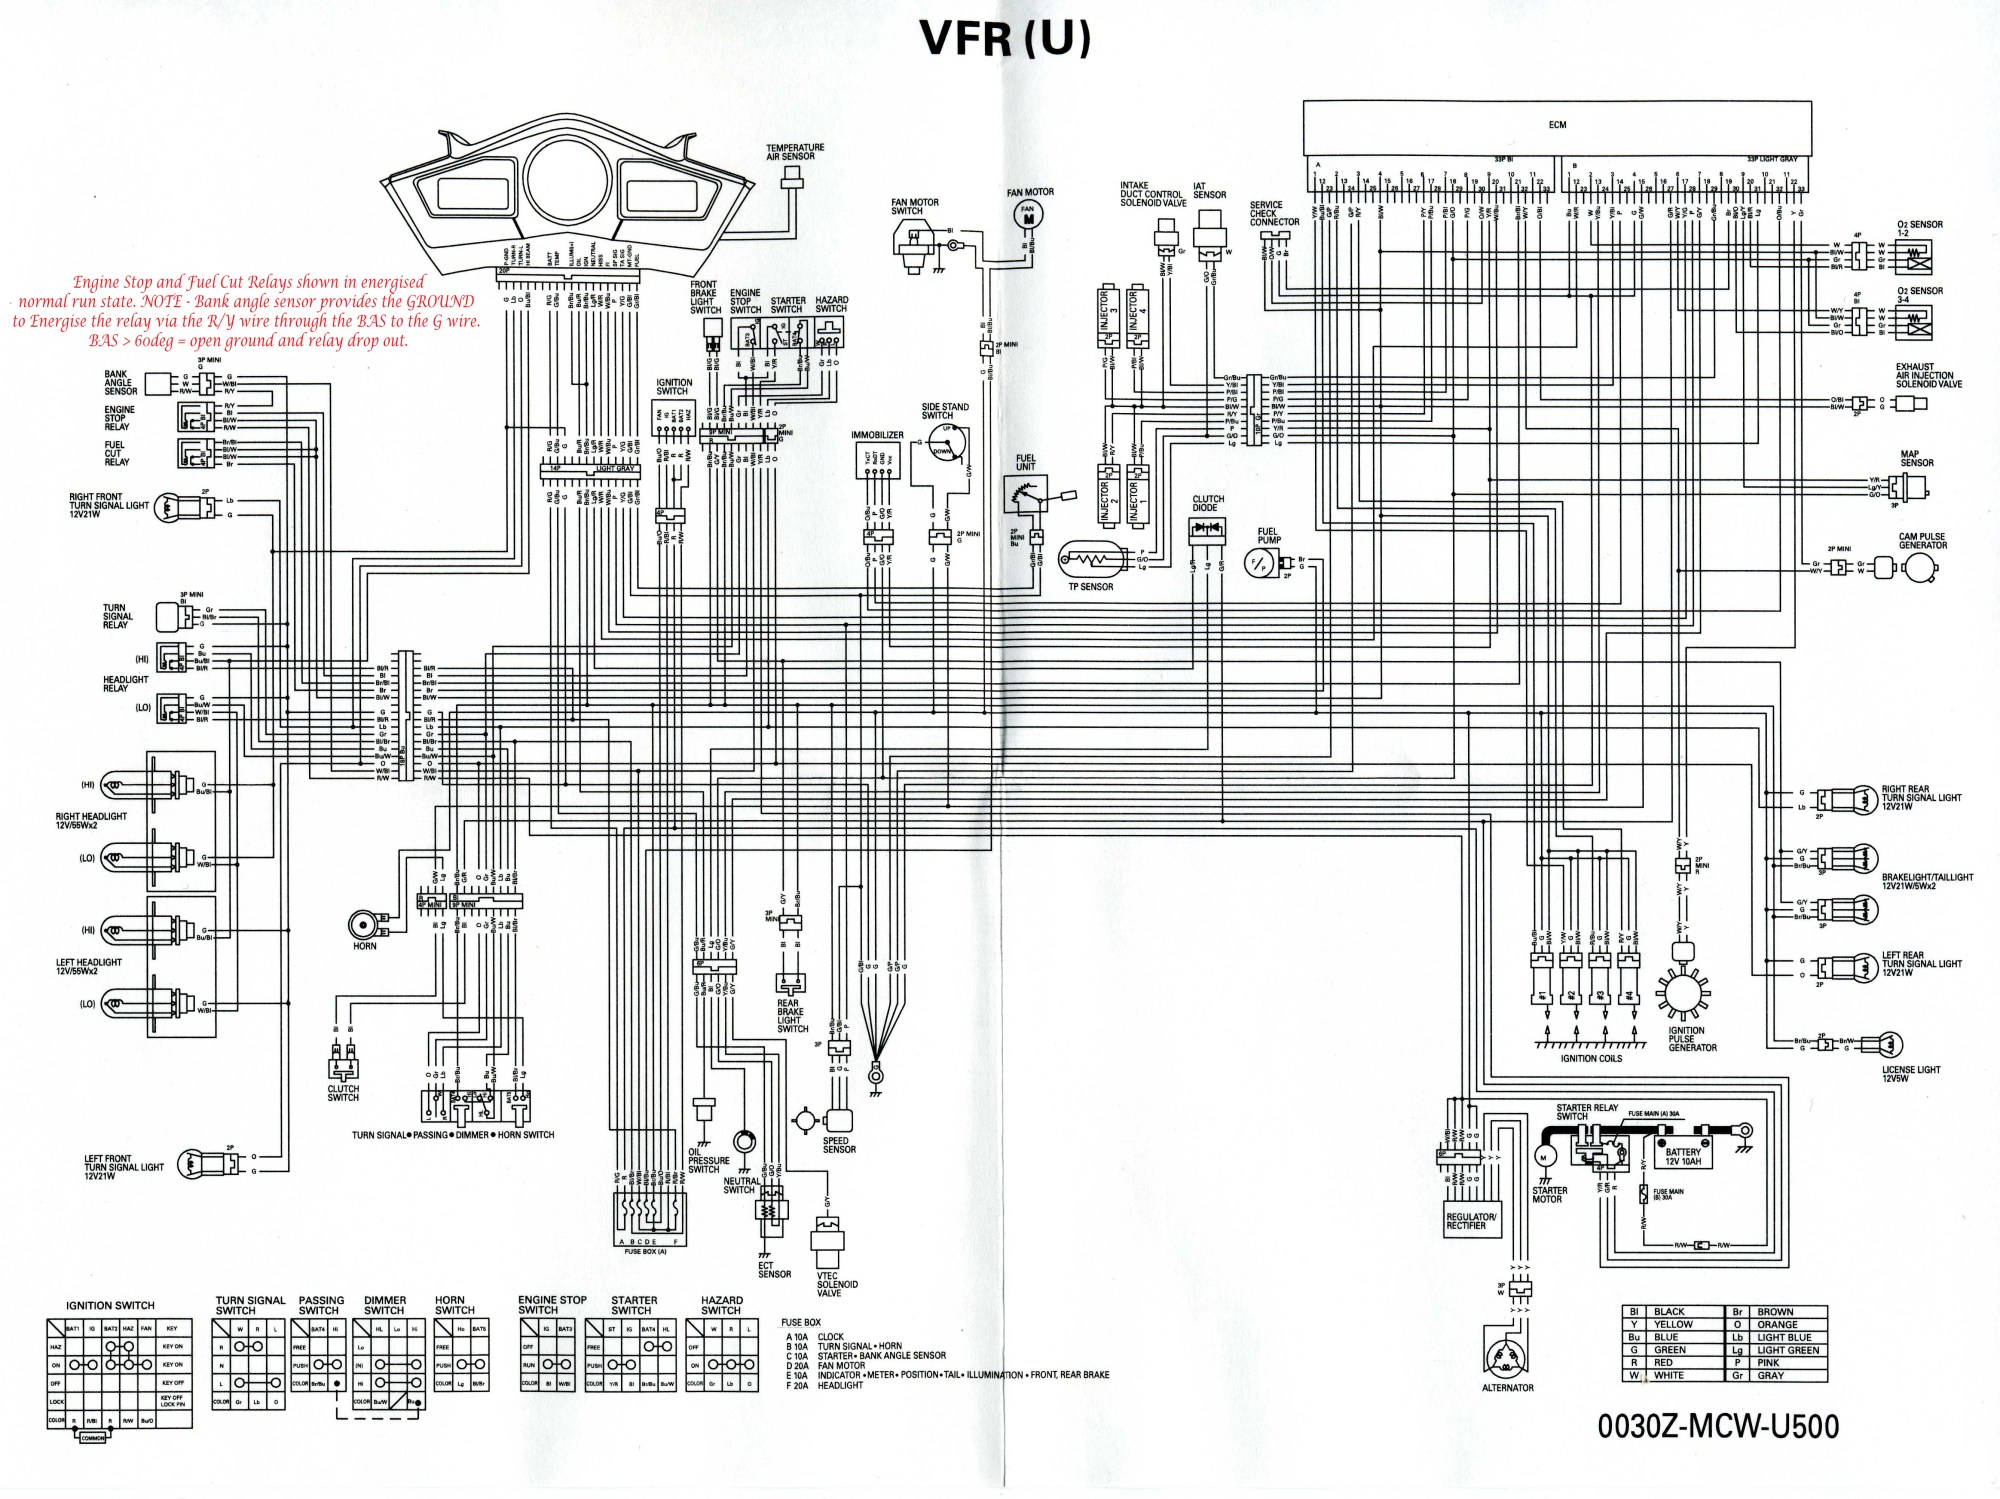 hight resolution of honda vfr 750 wiring diagram wiring diagram show 1995 honda vfr 750 wiring diagram honda vfr 750 wiring diagram